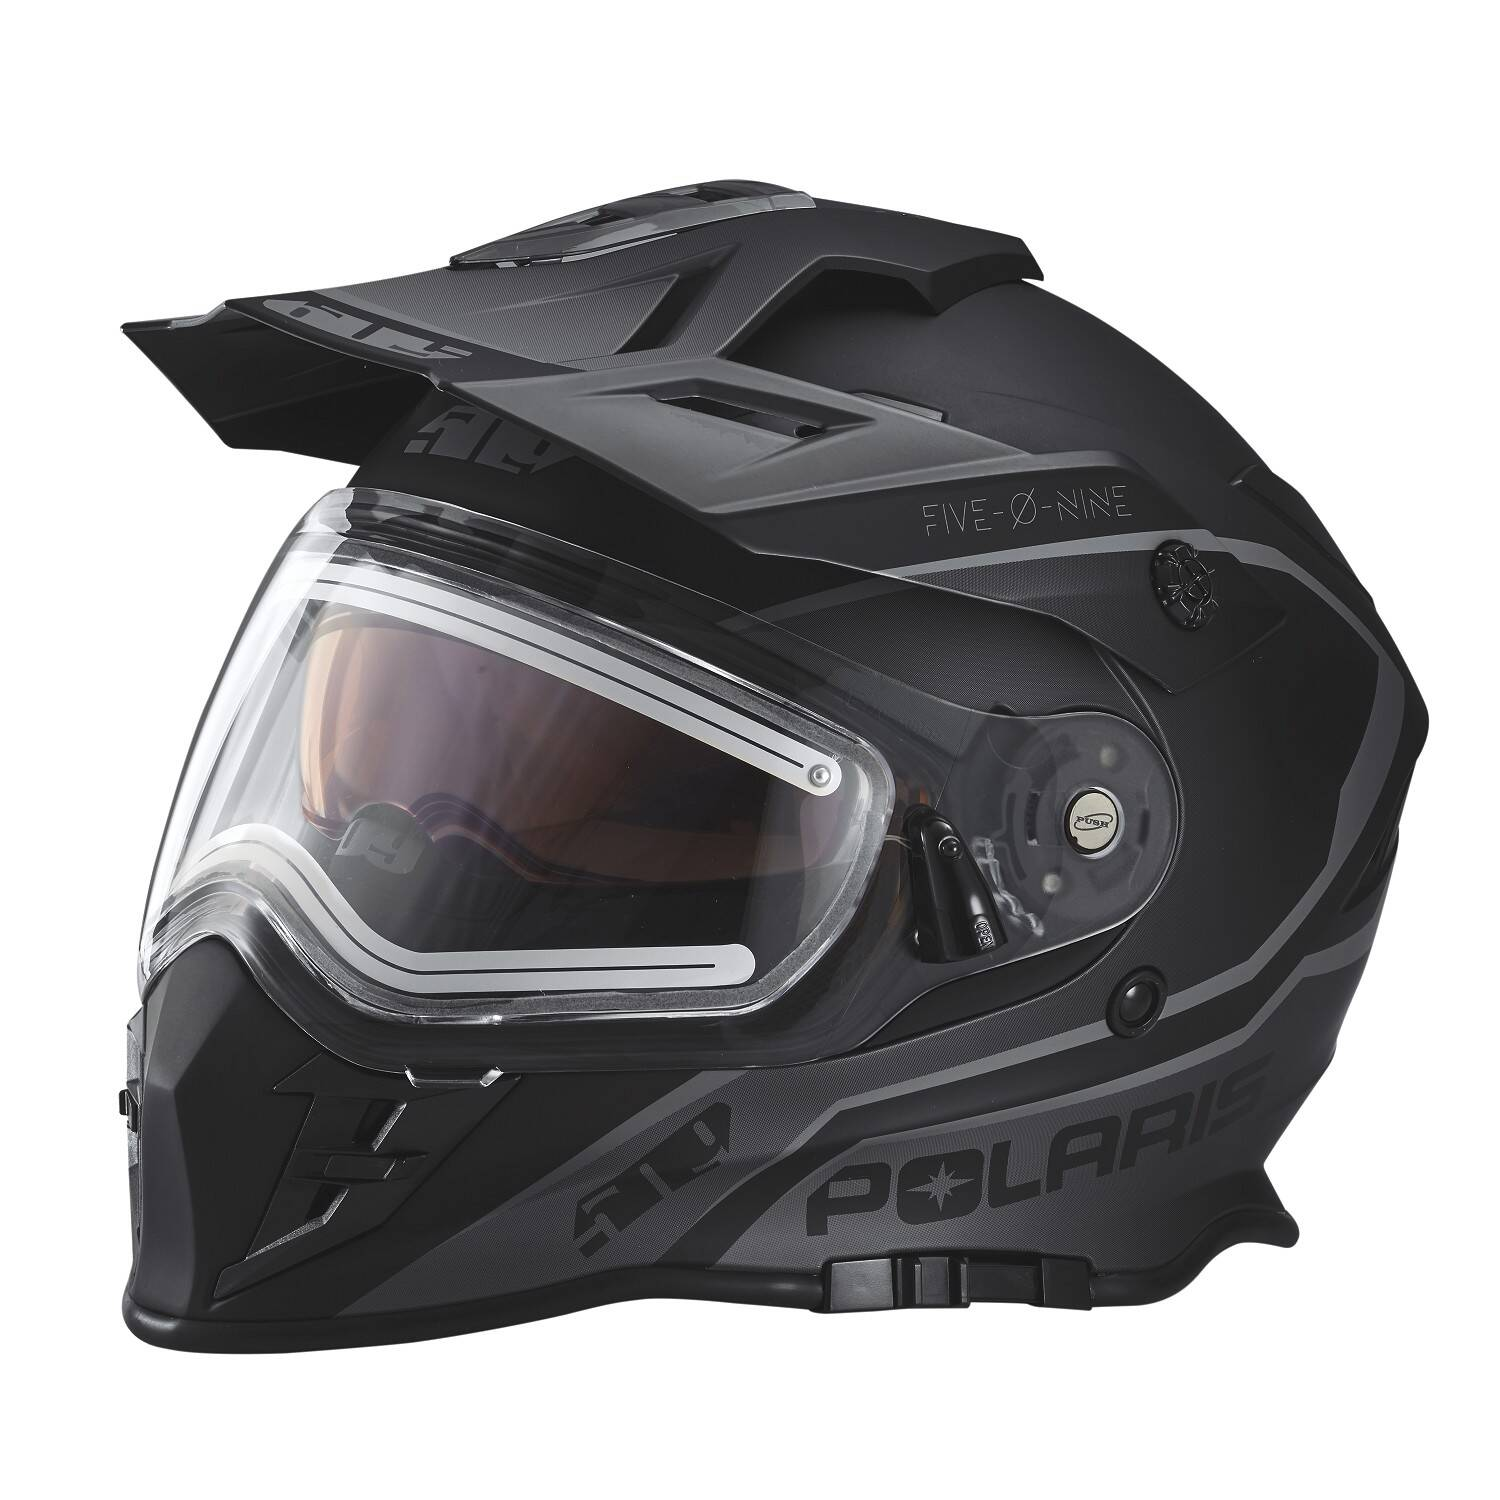 509® Delta Adult Moto Helmet with Removable Electric Shield, Black